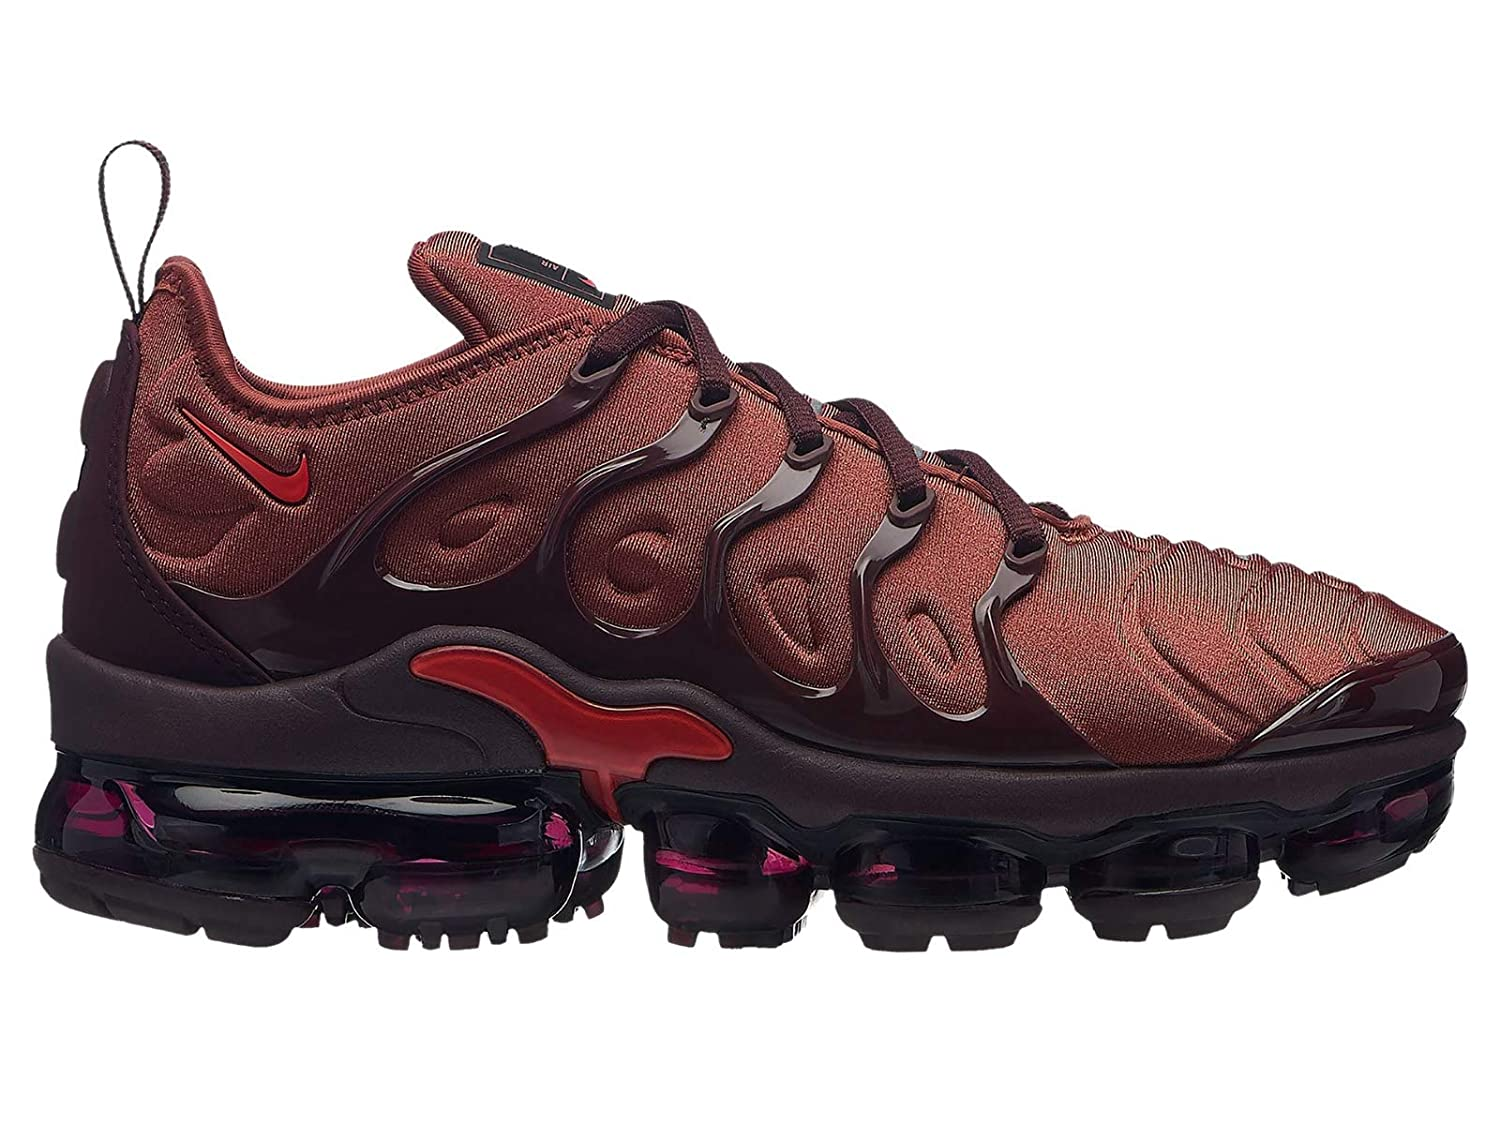 new style 79d8a 20fad Nike Air Vapormax Plus - Women's Burnt Orange/Habanero Red/Burgundy Crush  Nylon Running Shoes 8.5 B(M) US